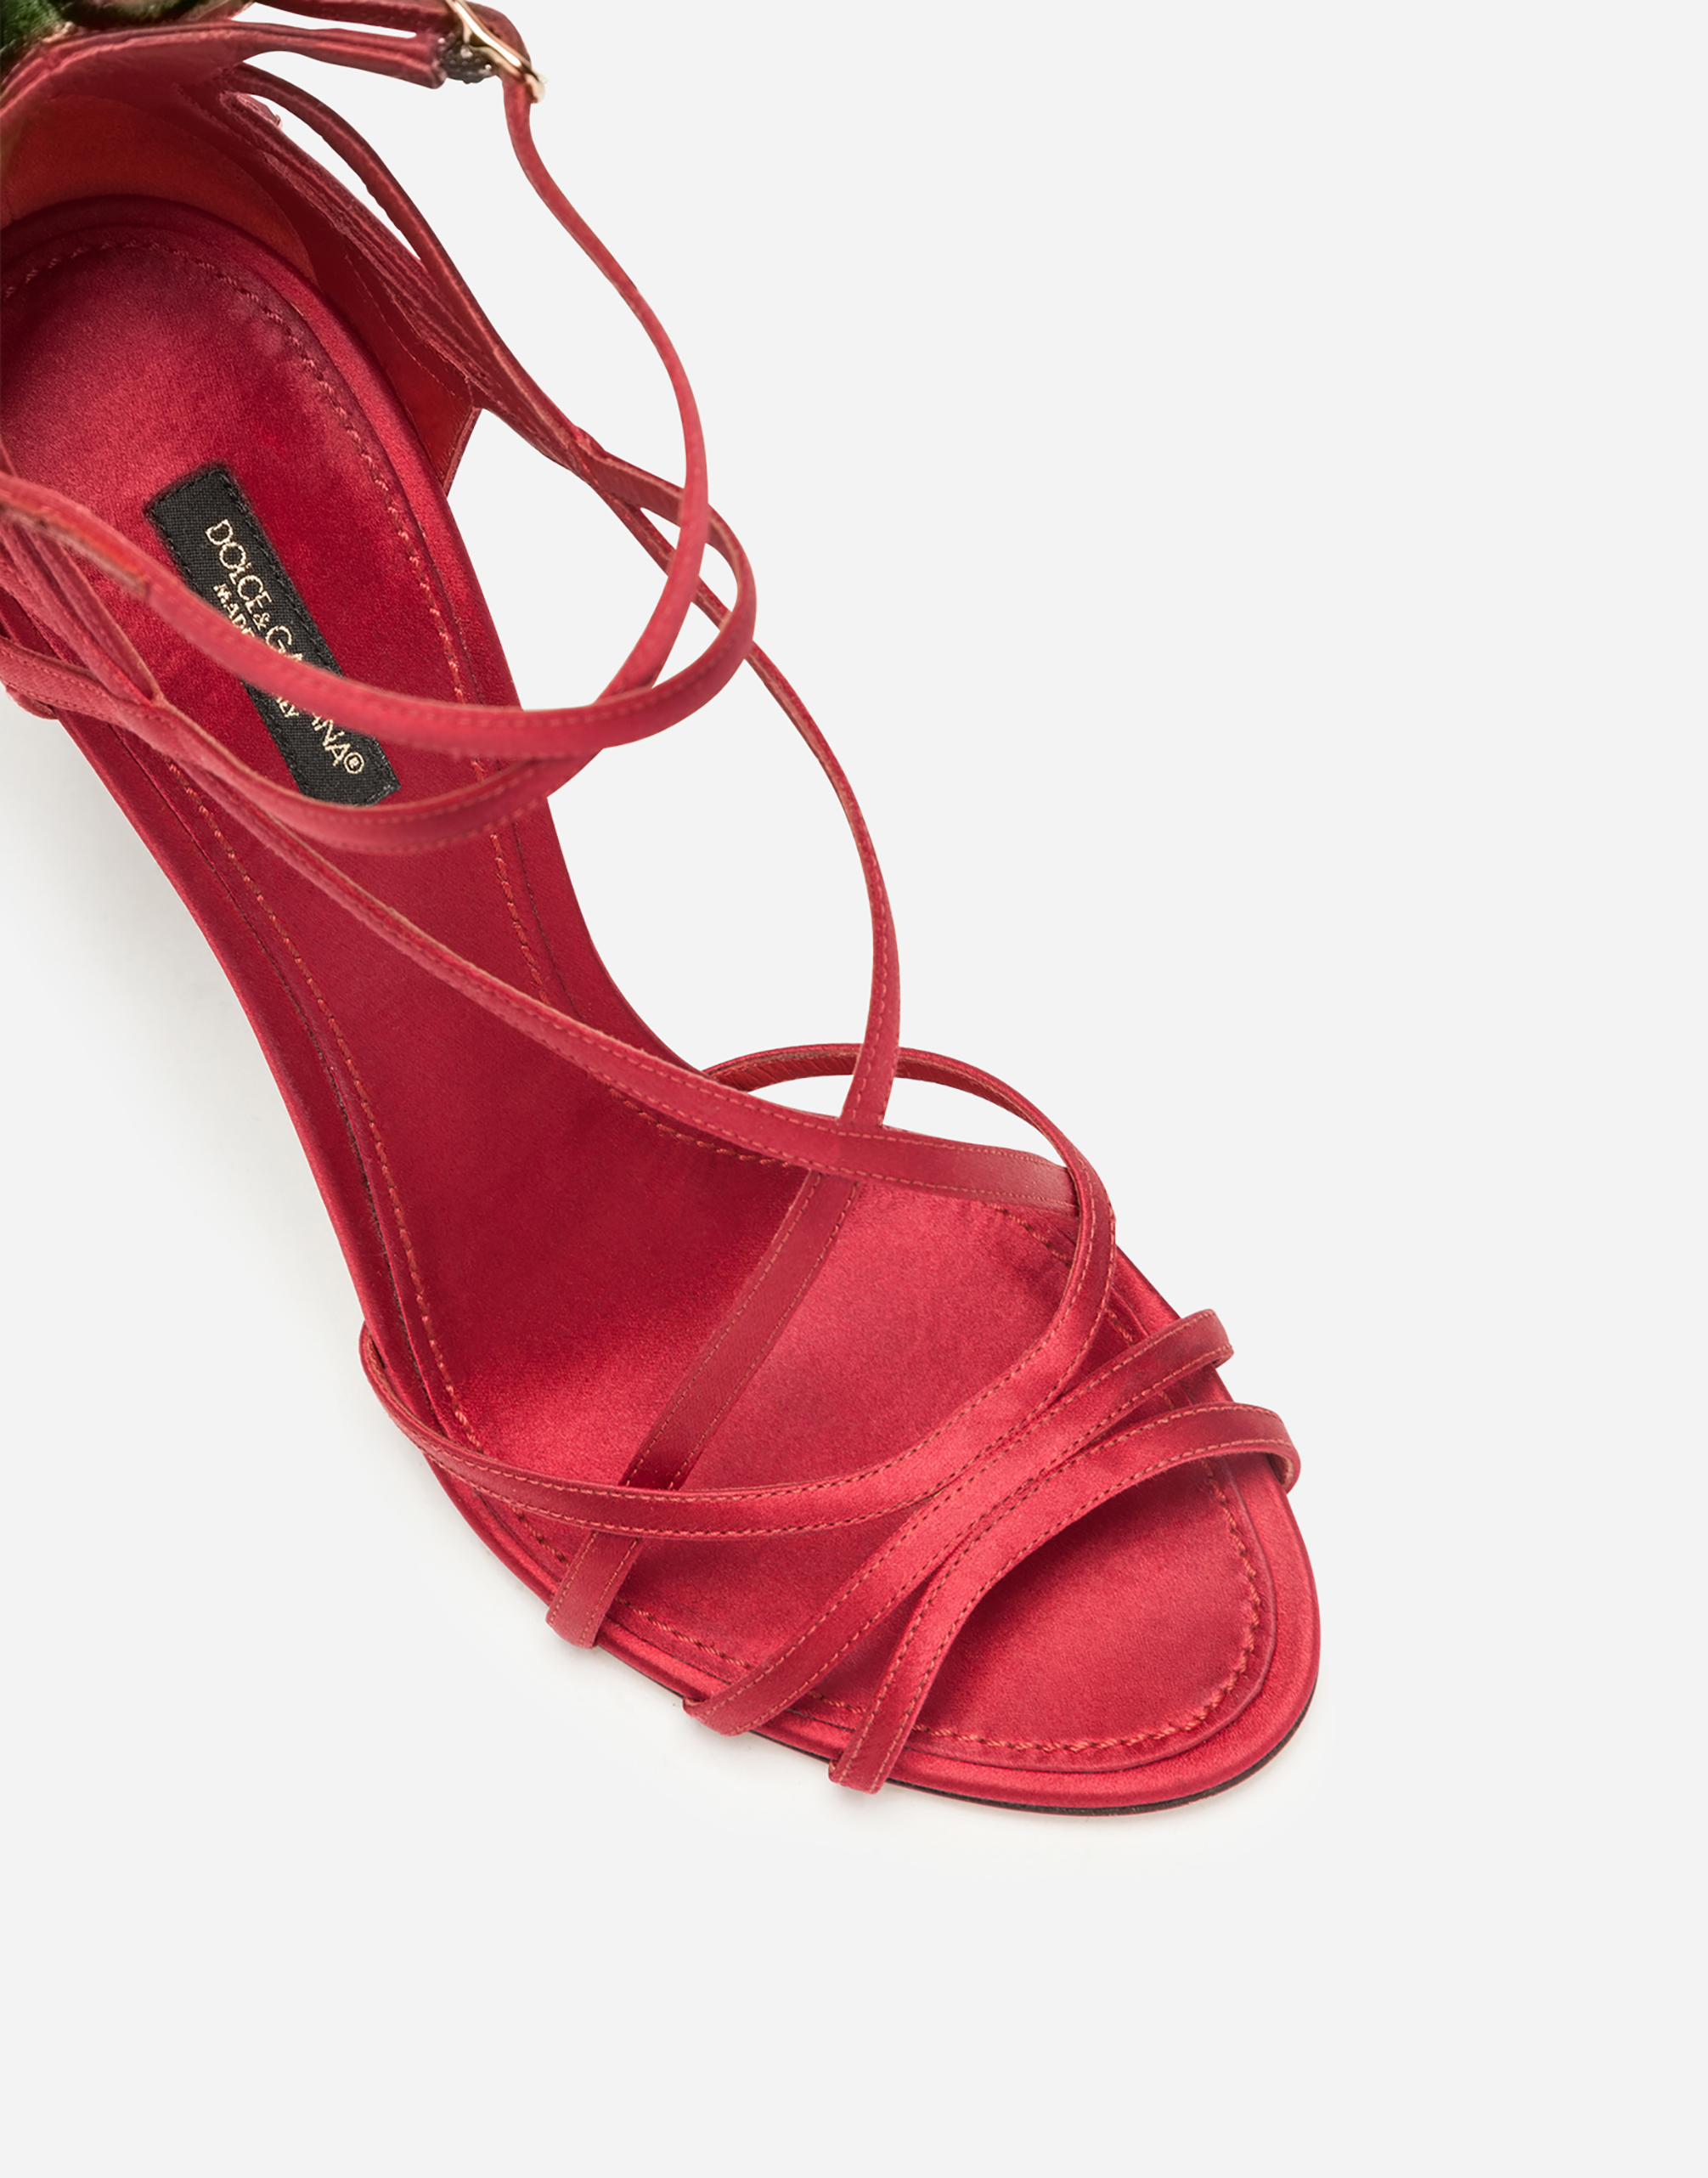 Dolce&Gabbana SATIN SANDALS WITH EMBROIDERY